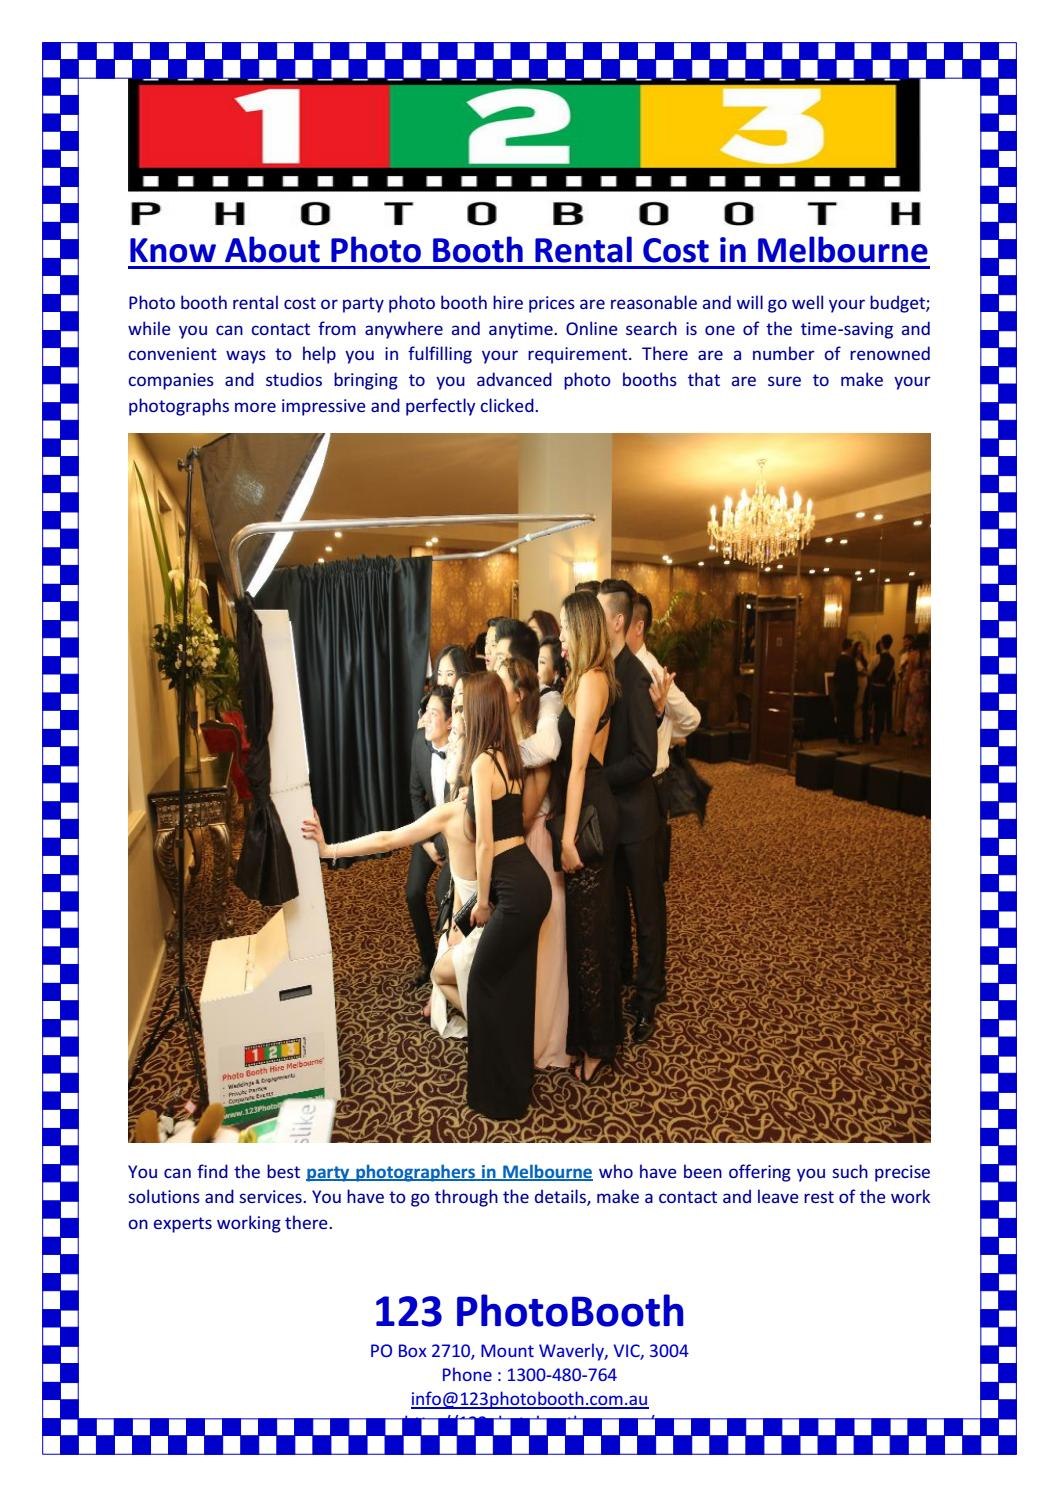 Know About Photo Booth Rental Cost in Melbourne by 123